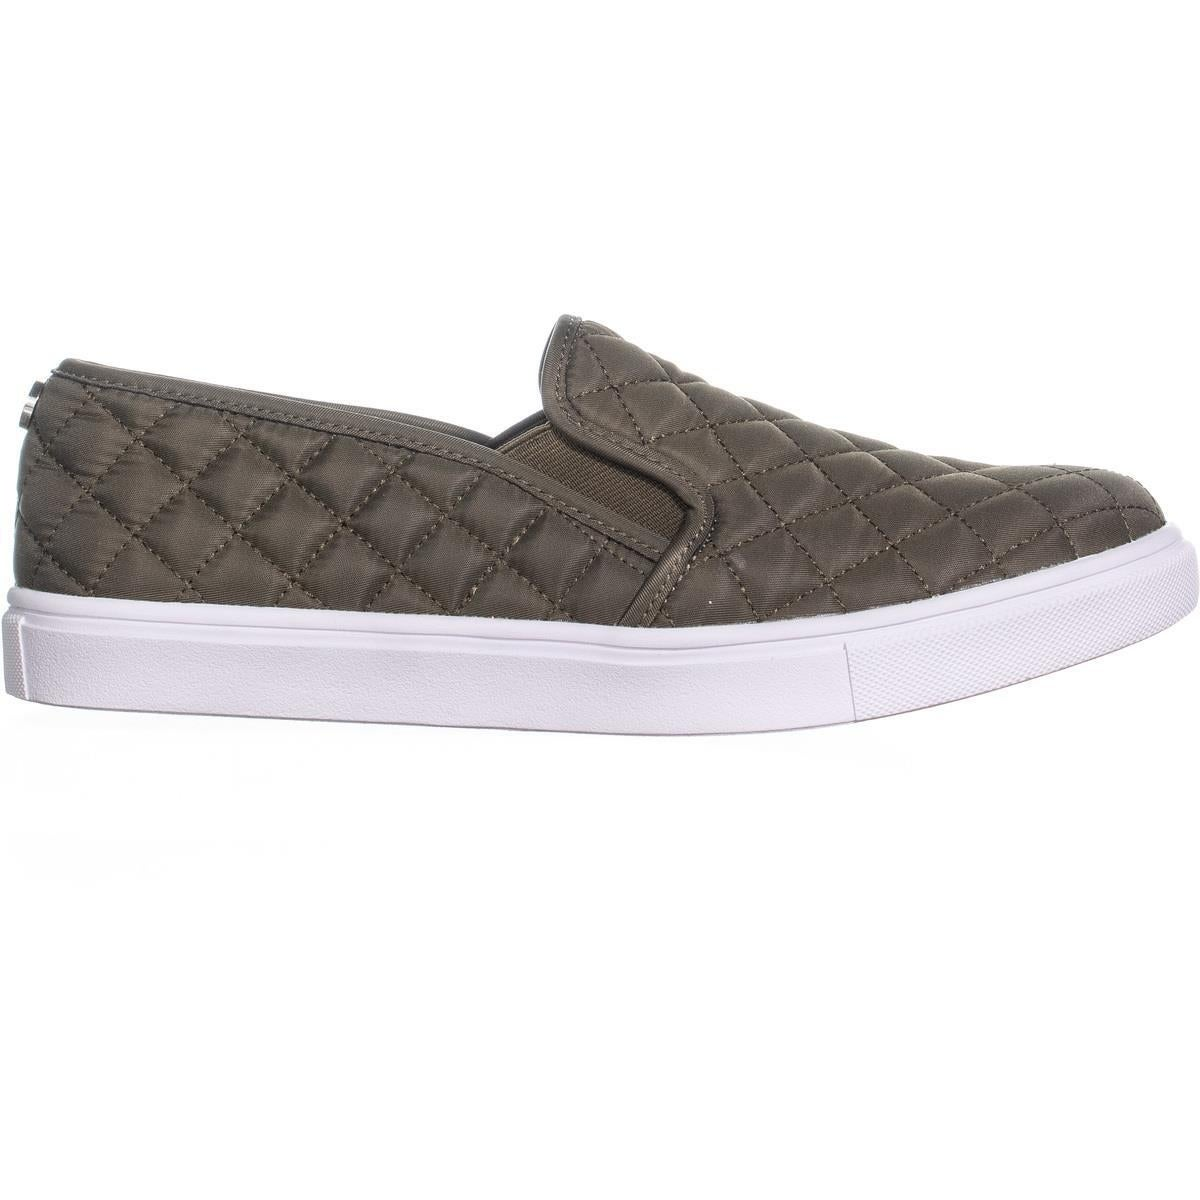 eeb835a697f Shop Steve Madden Ecentrcq Quilted Fashion Sneakers